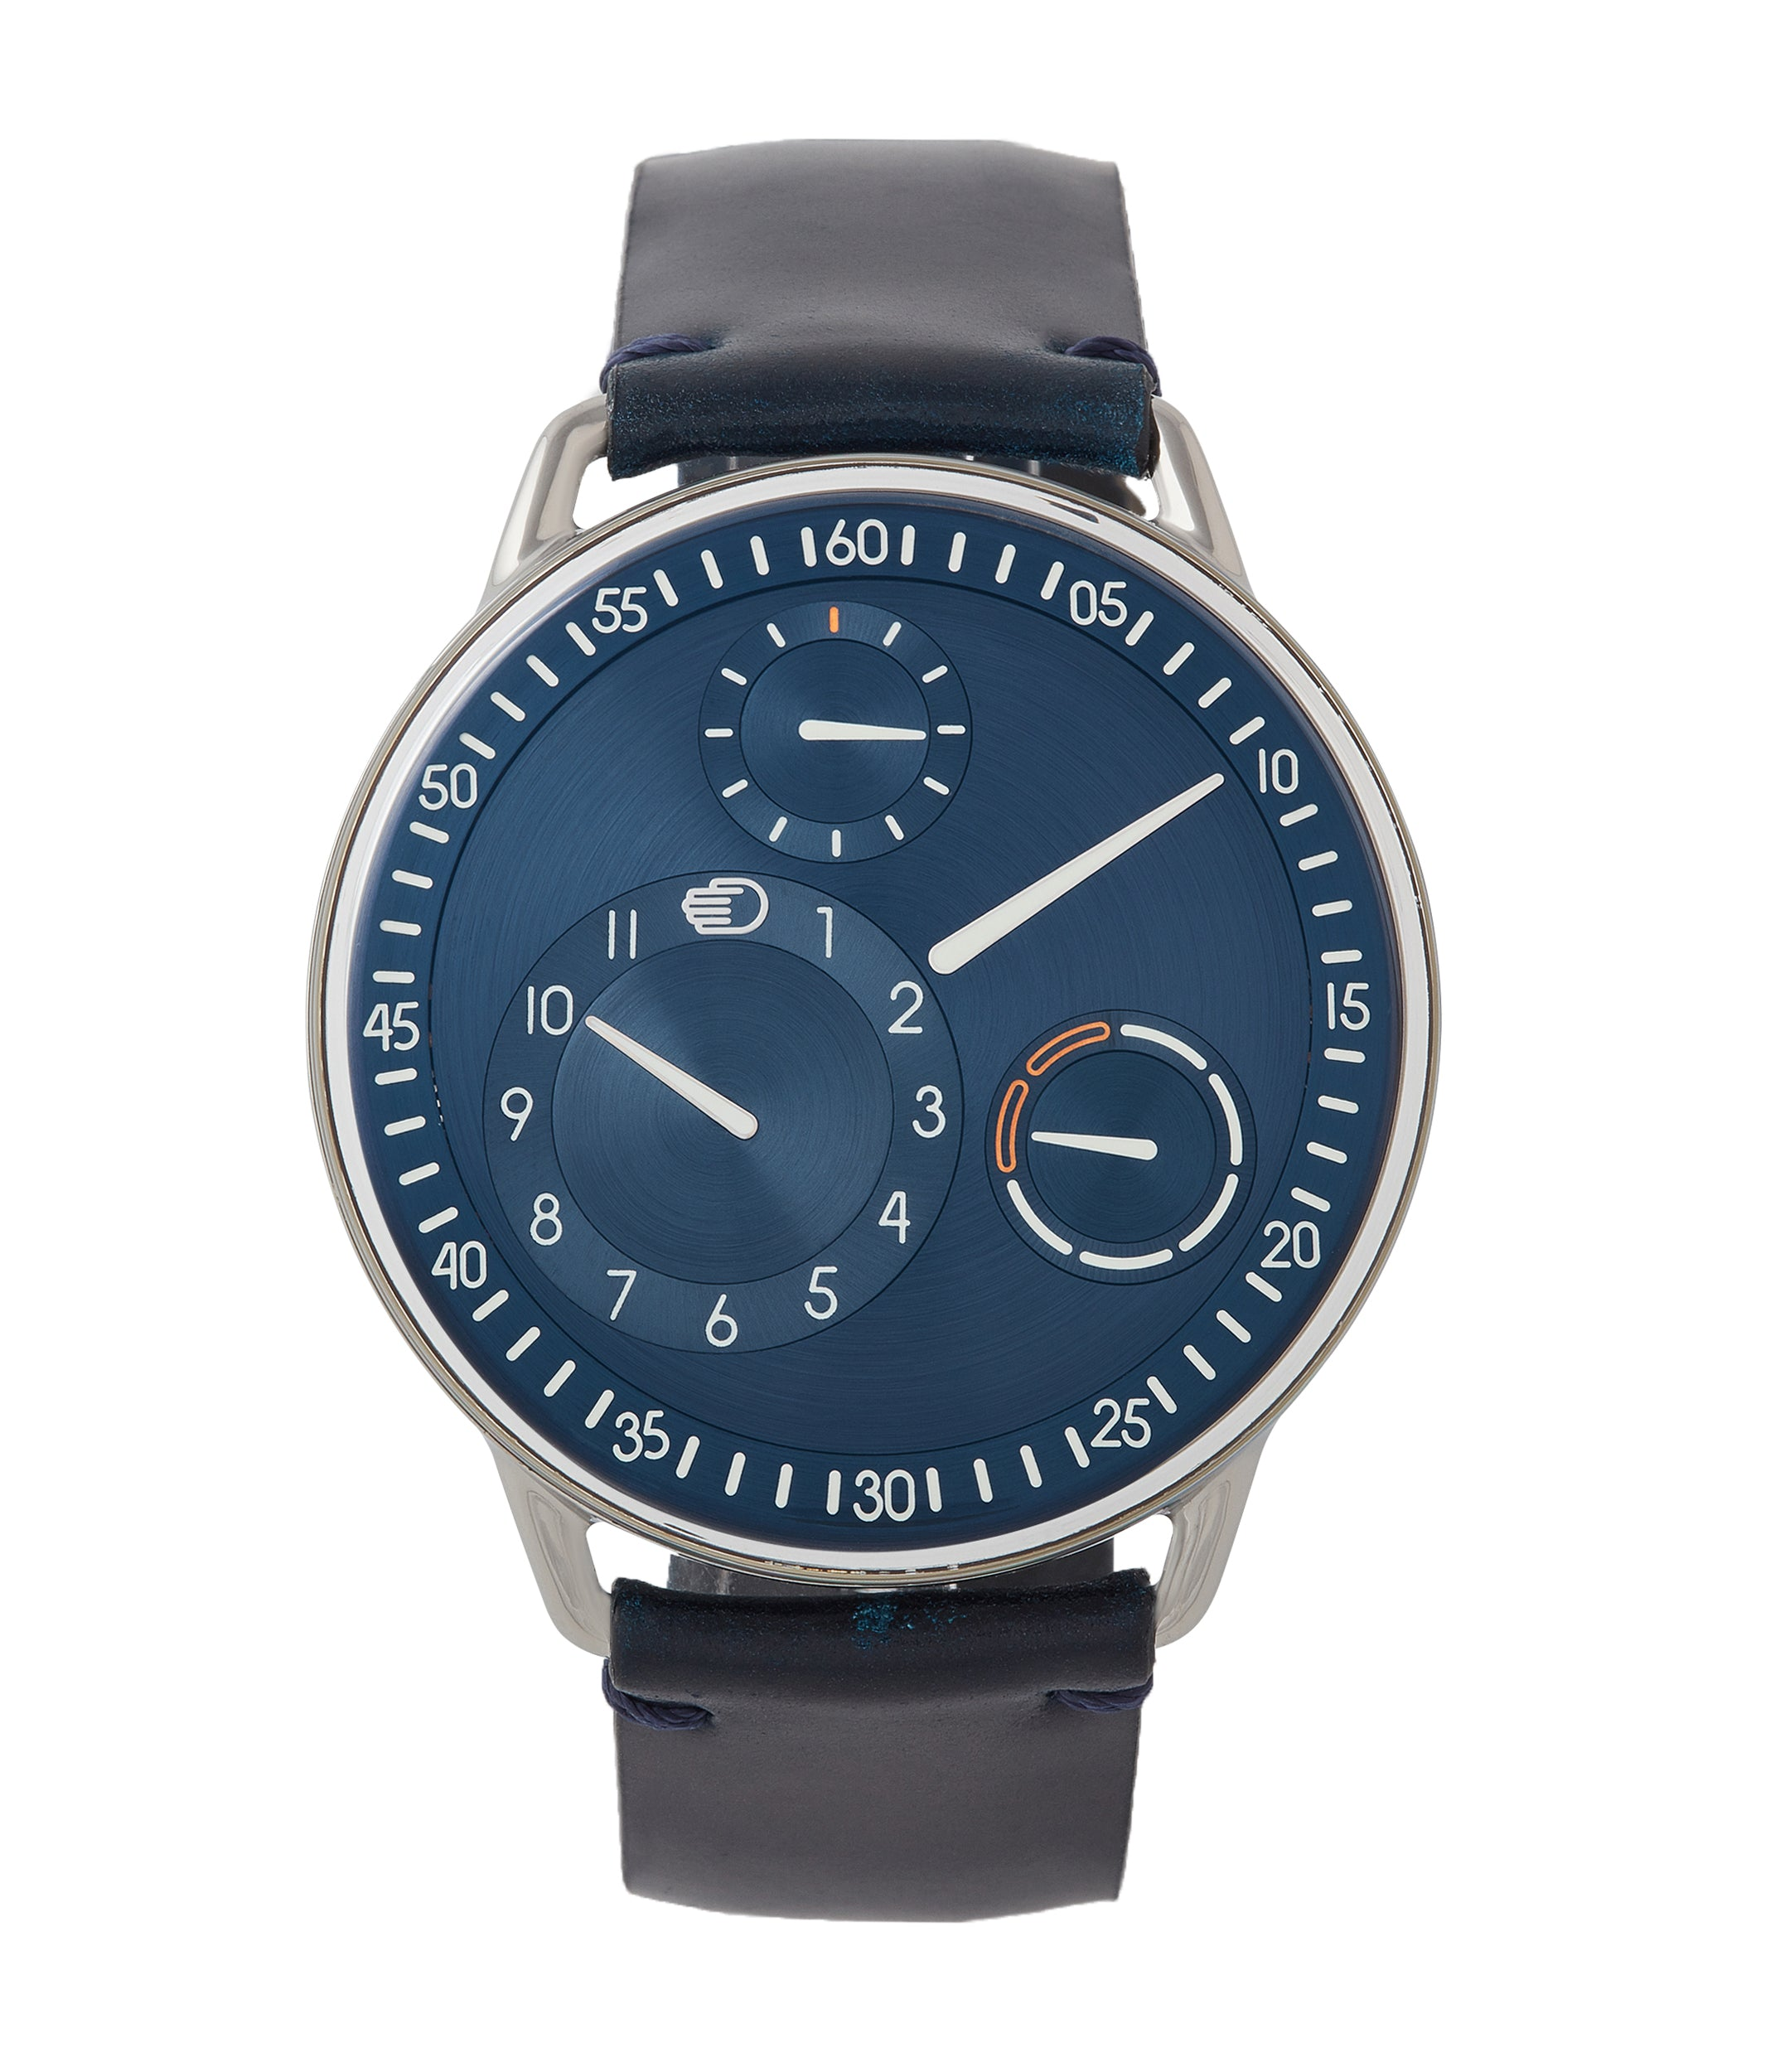 buy Ressence Type 1N titanium blue dial independent watchmaker watch for sale online at A Collected Man London UK specialist of rare watches